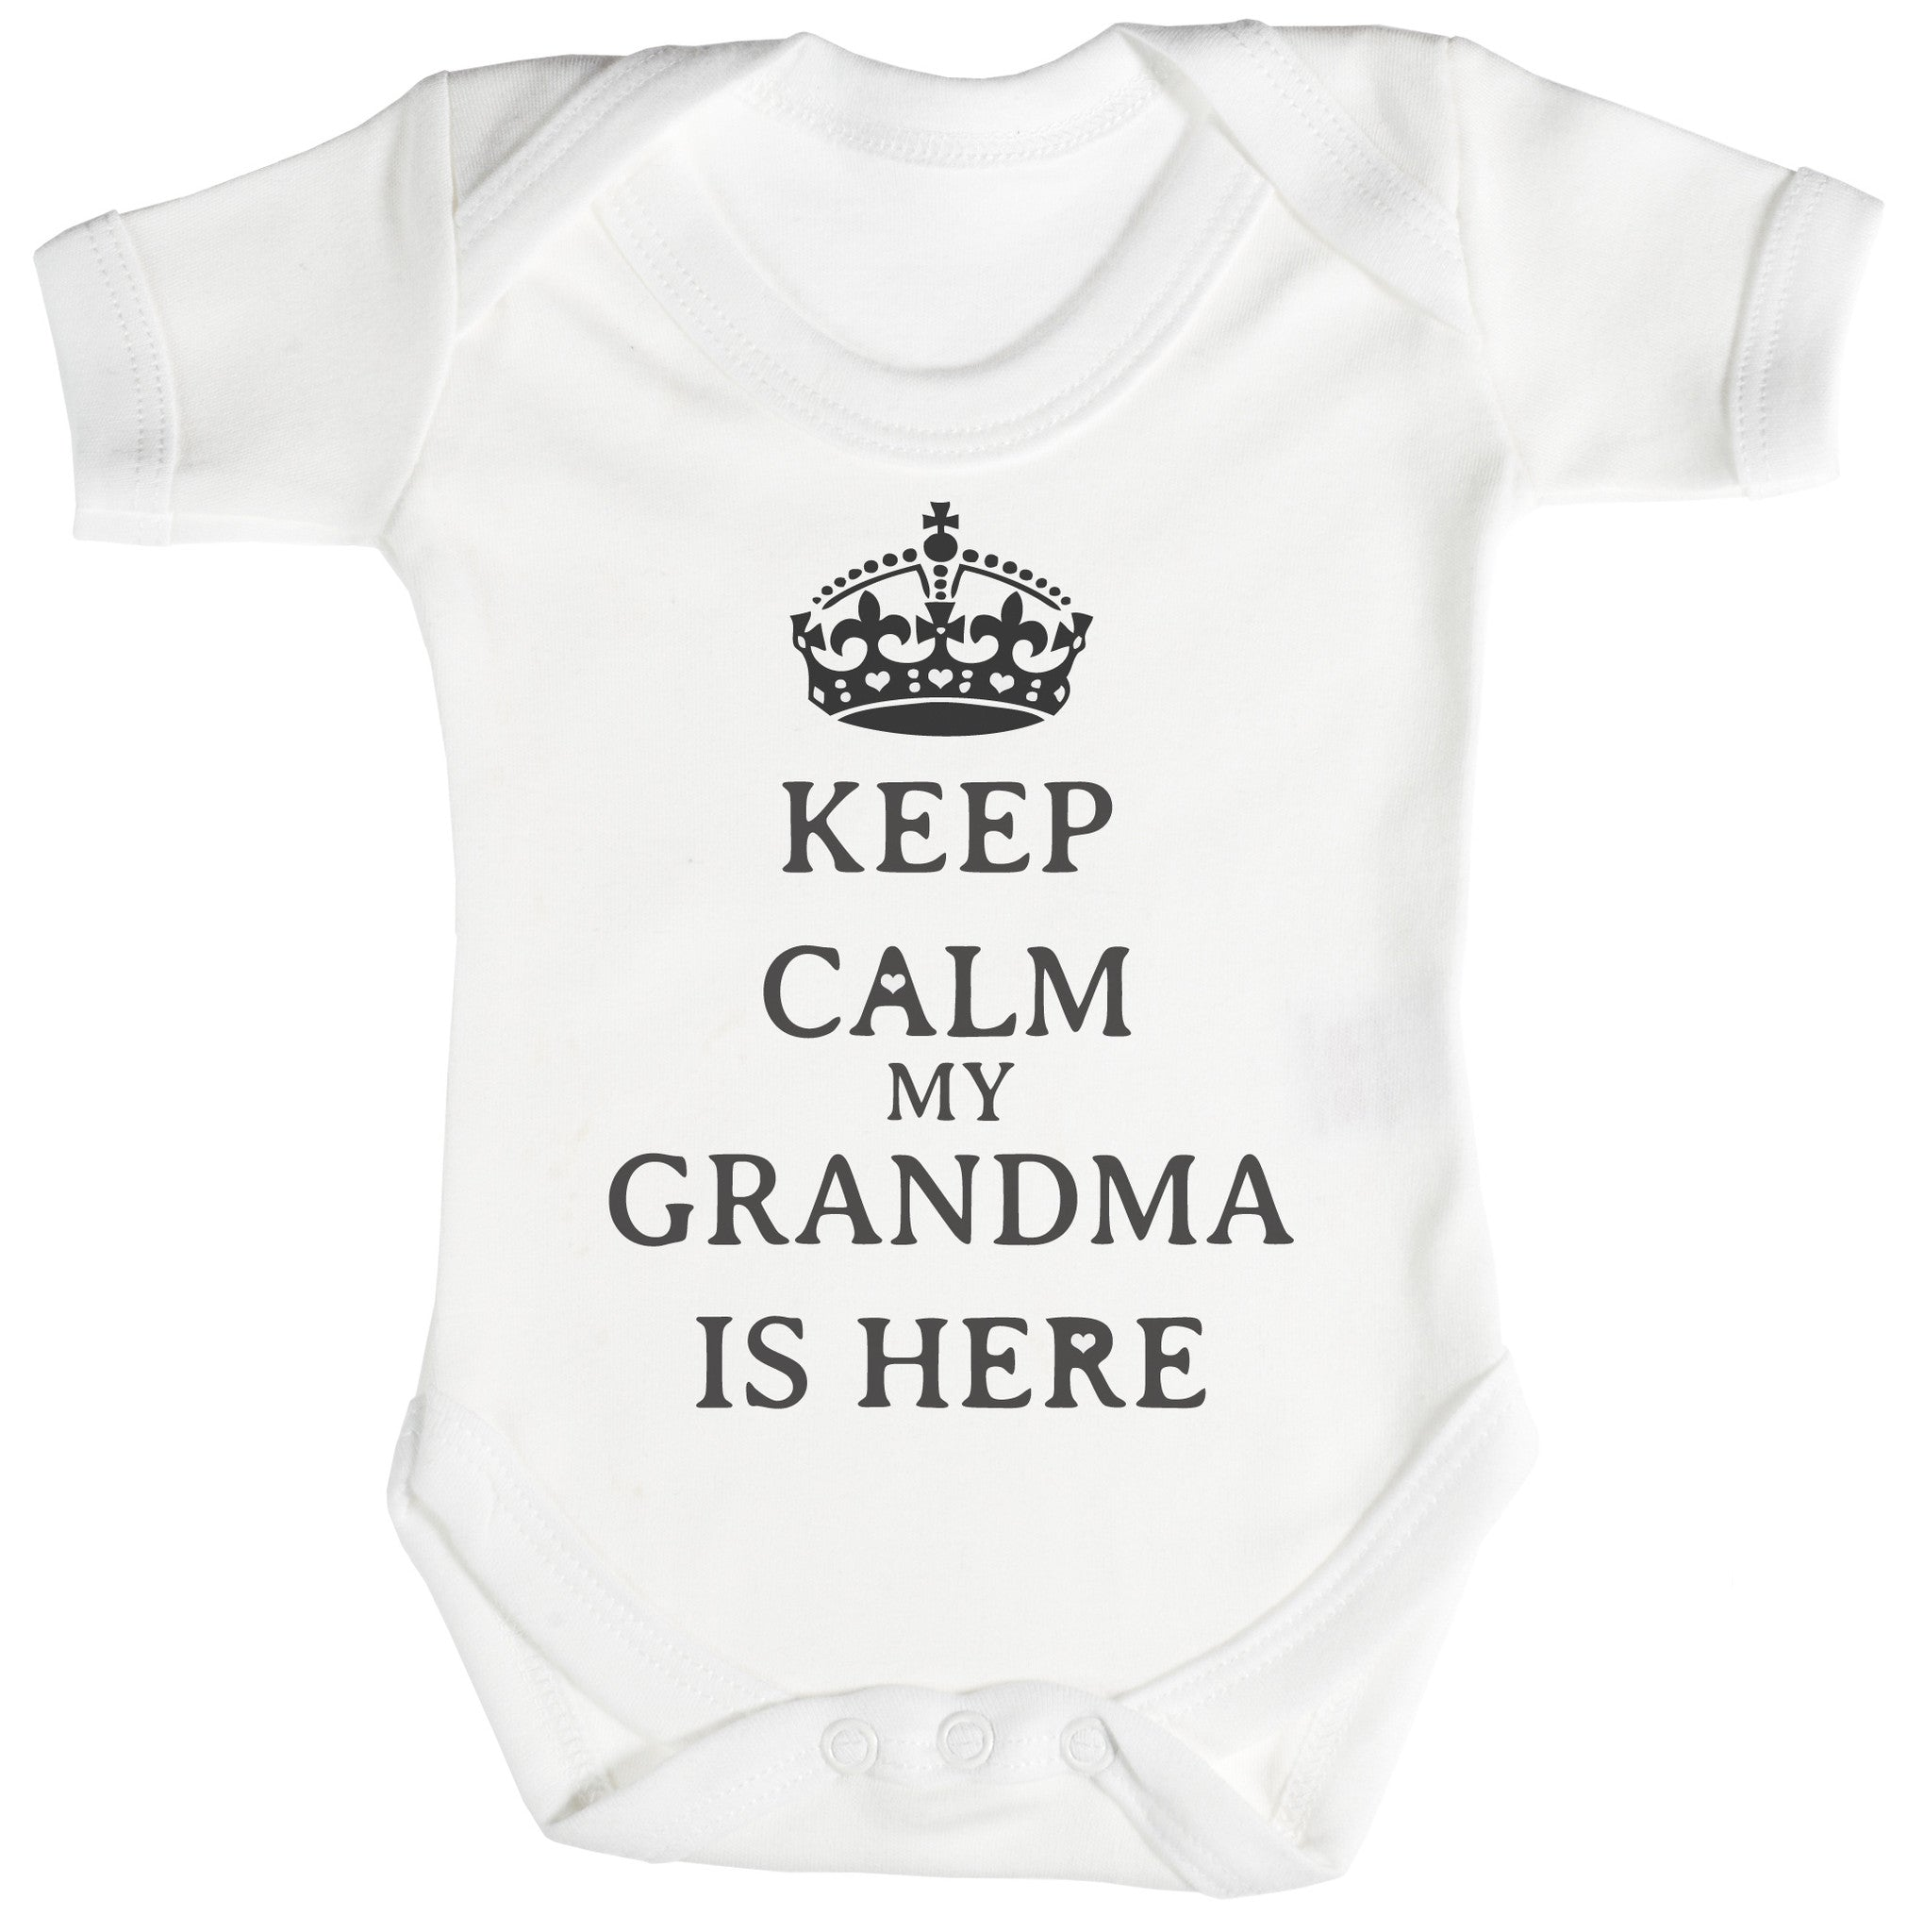 Calm Grandma is Here Baby Bodysuit Babygrow